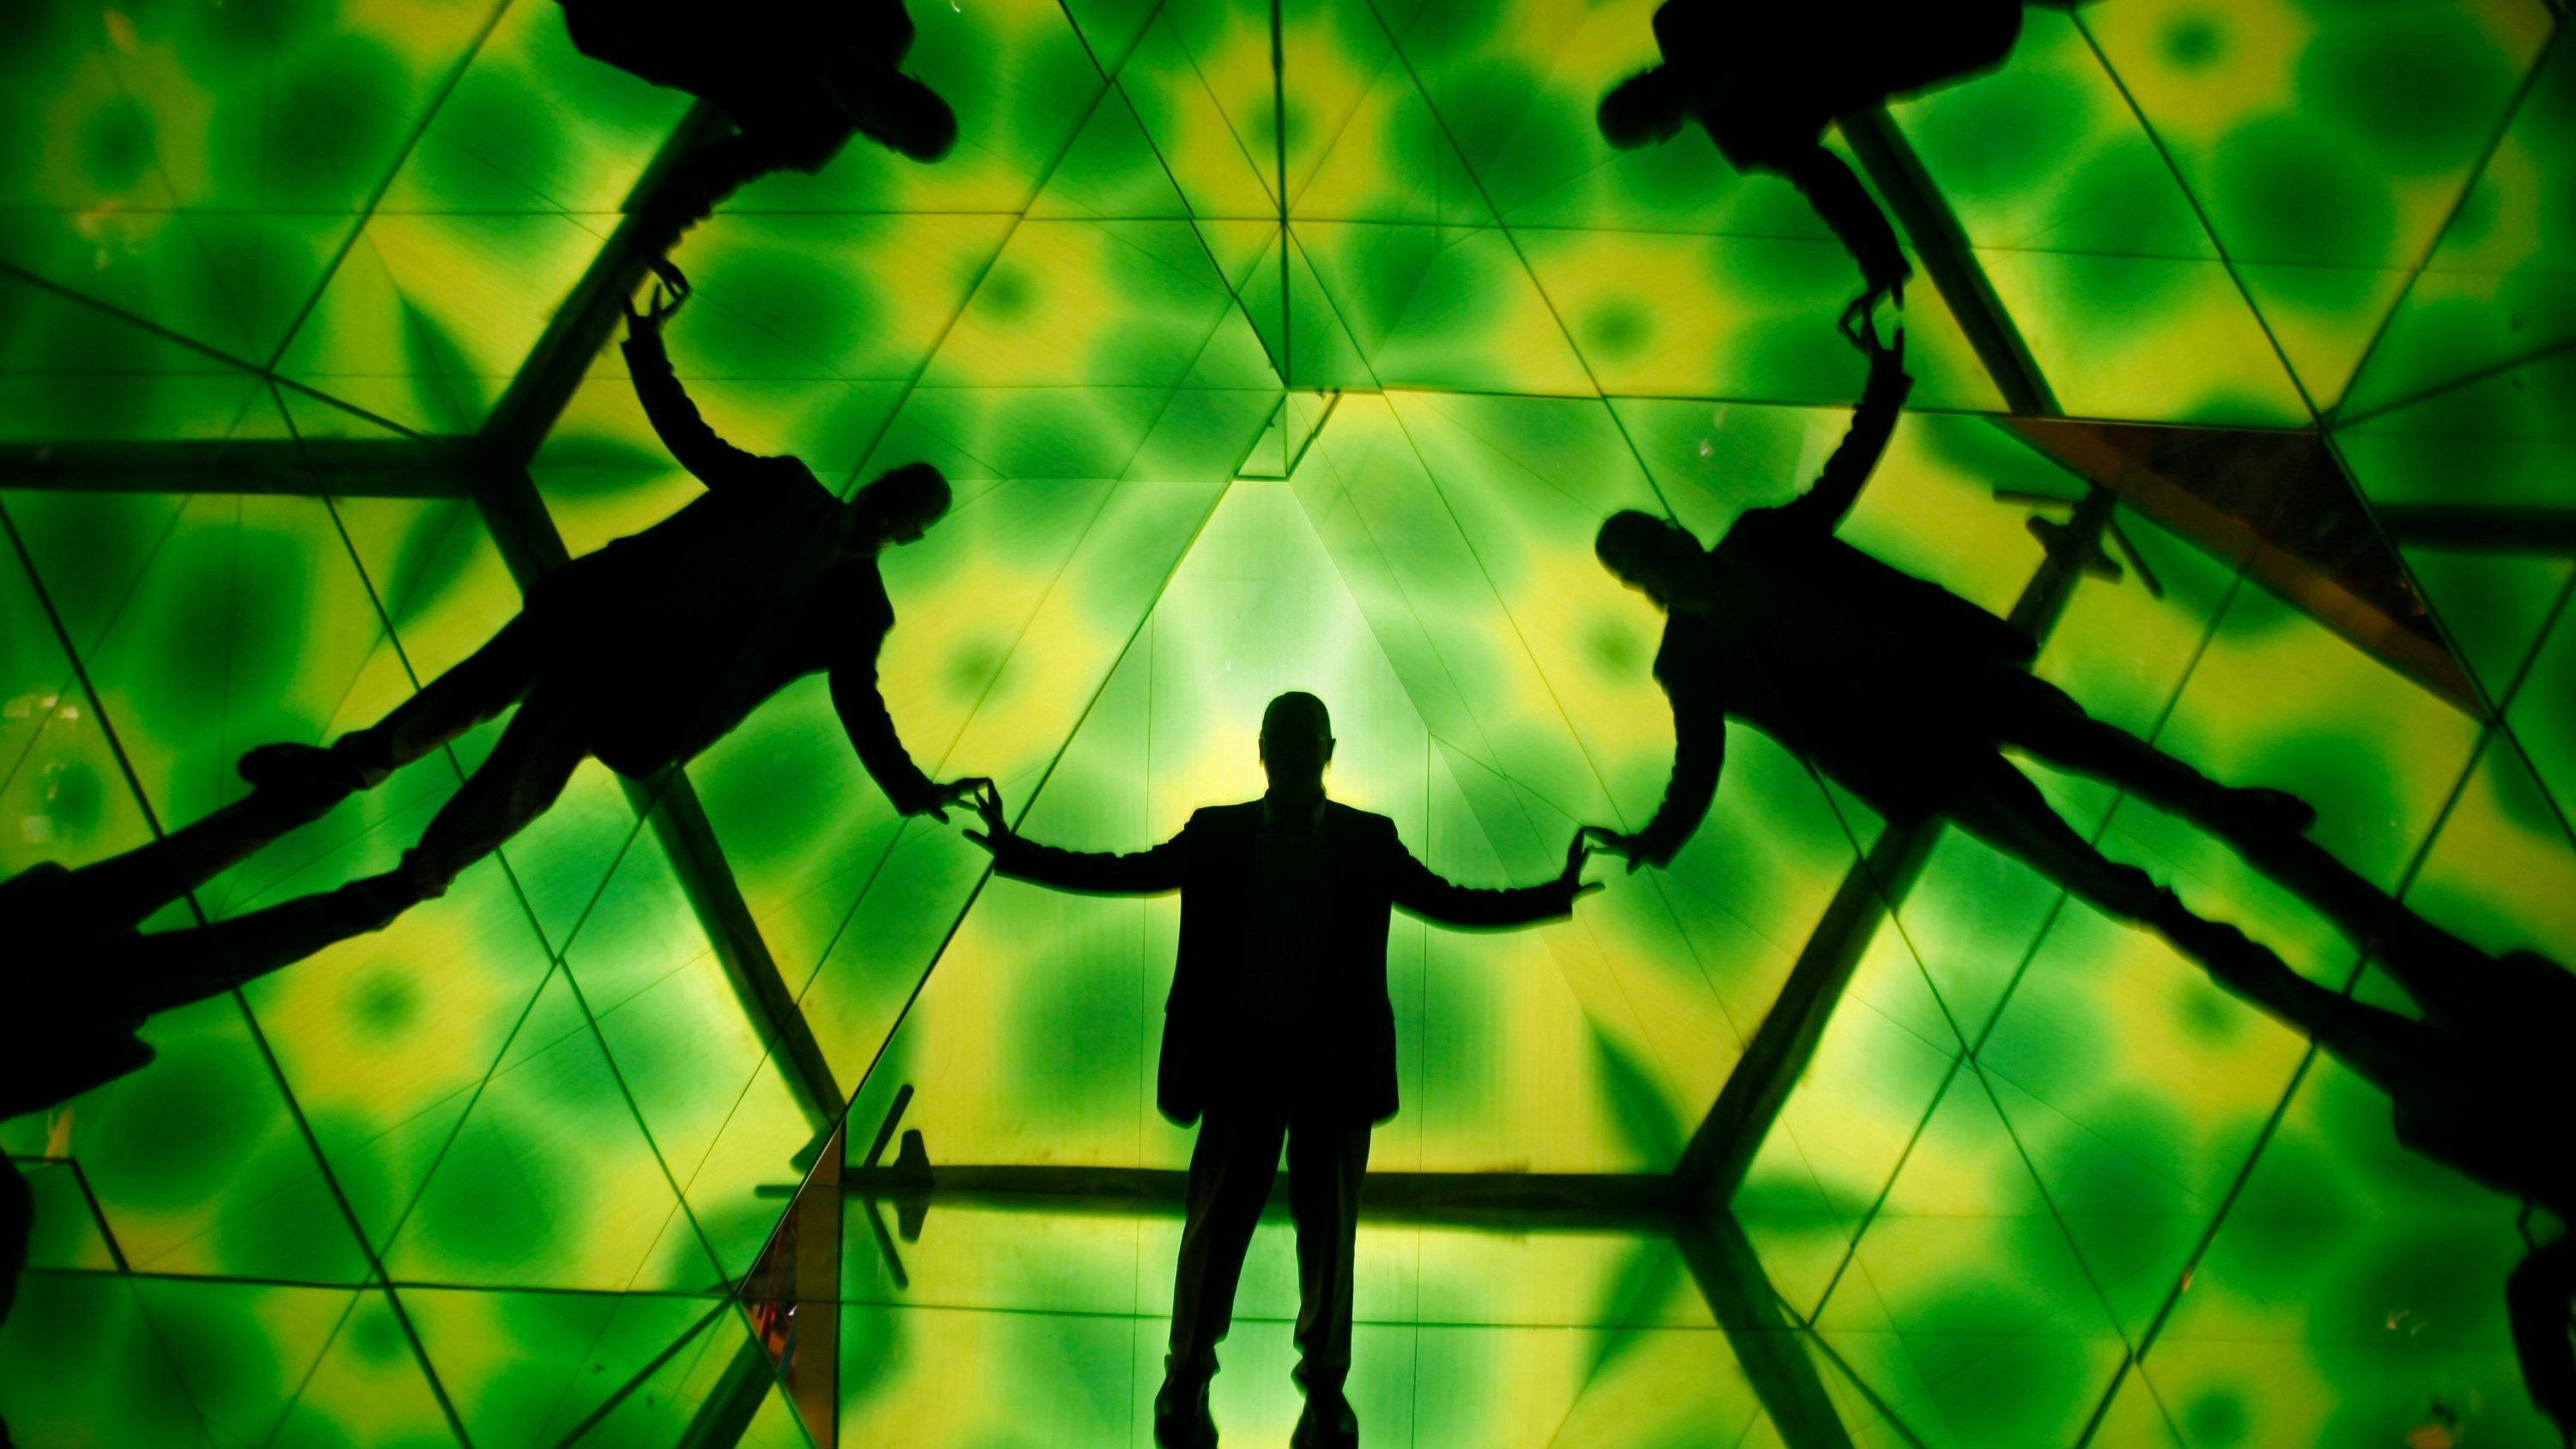 Tim O'Brien makes his way through a human kaleidoscope at the Ripley's Believe It or Not! Odditorium in San Francisco, Tuesday, June 29, 2010. The Fisherman's Wharf attraction since 1967, will reopen Wednesday after undergoing a renovation that took several months, cost $5 million and houses 300 exhibits of which 80% are new.